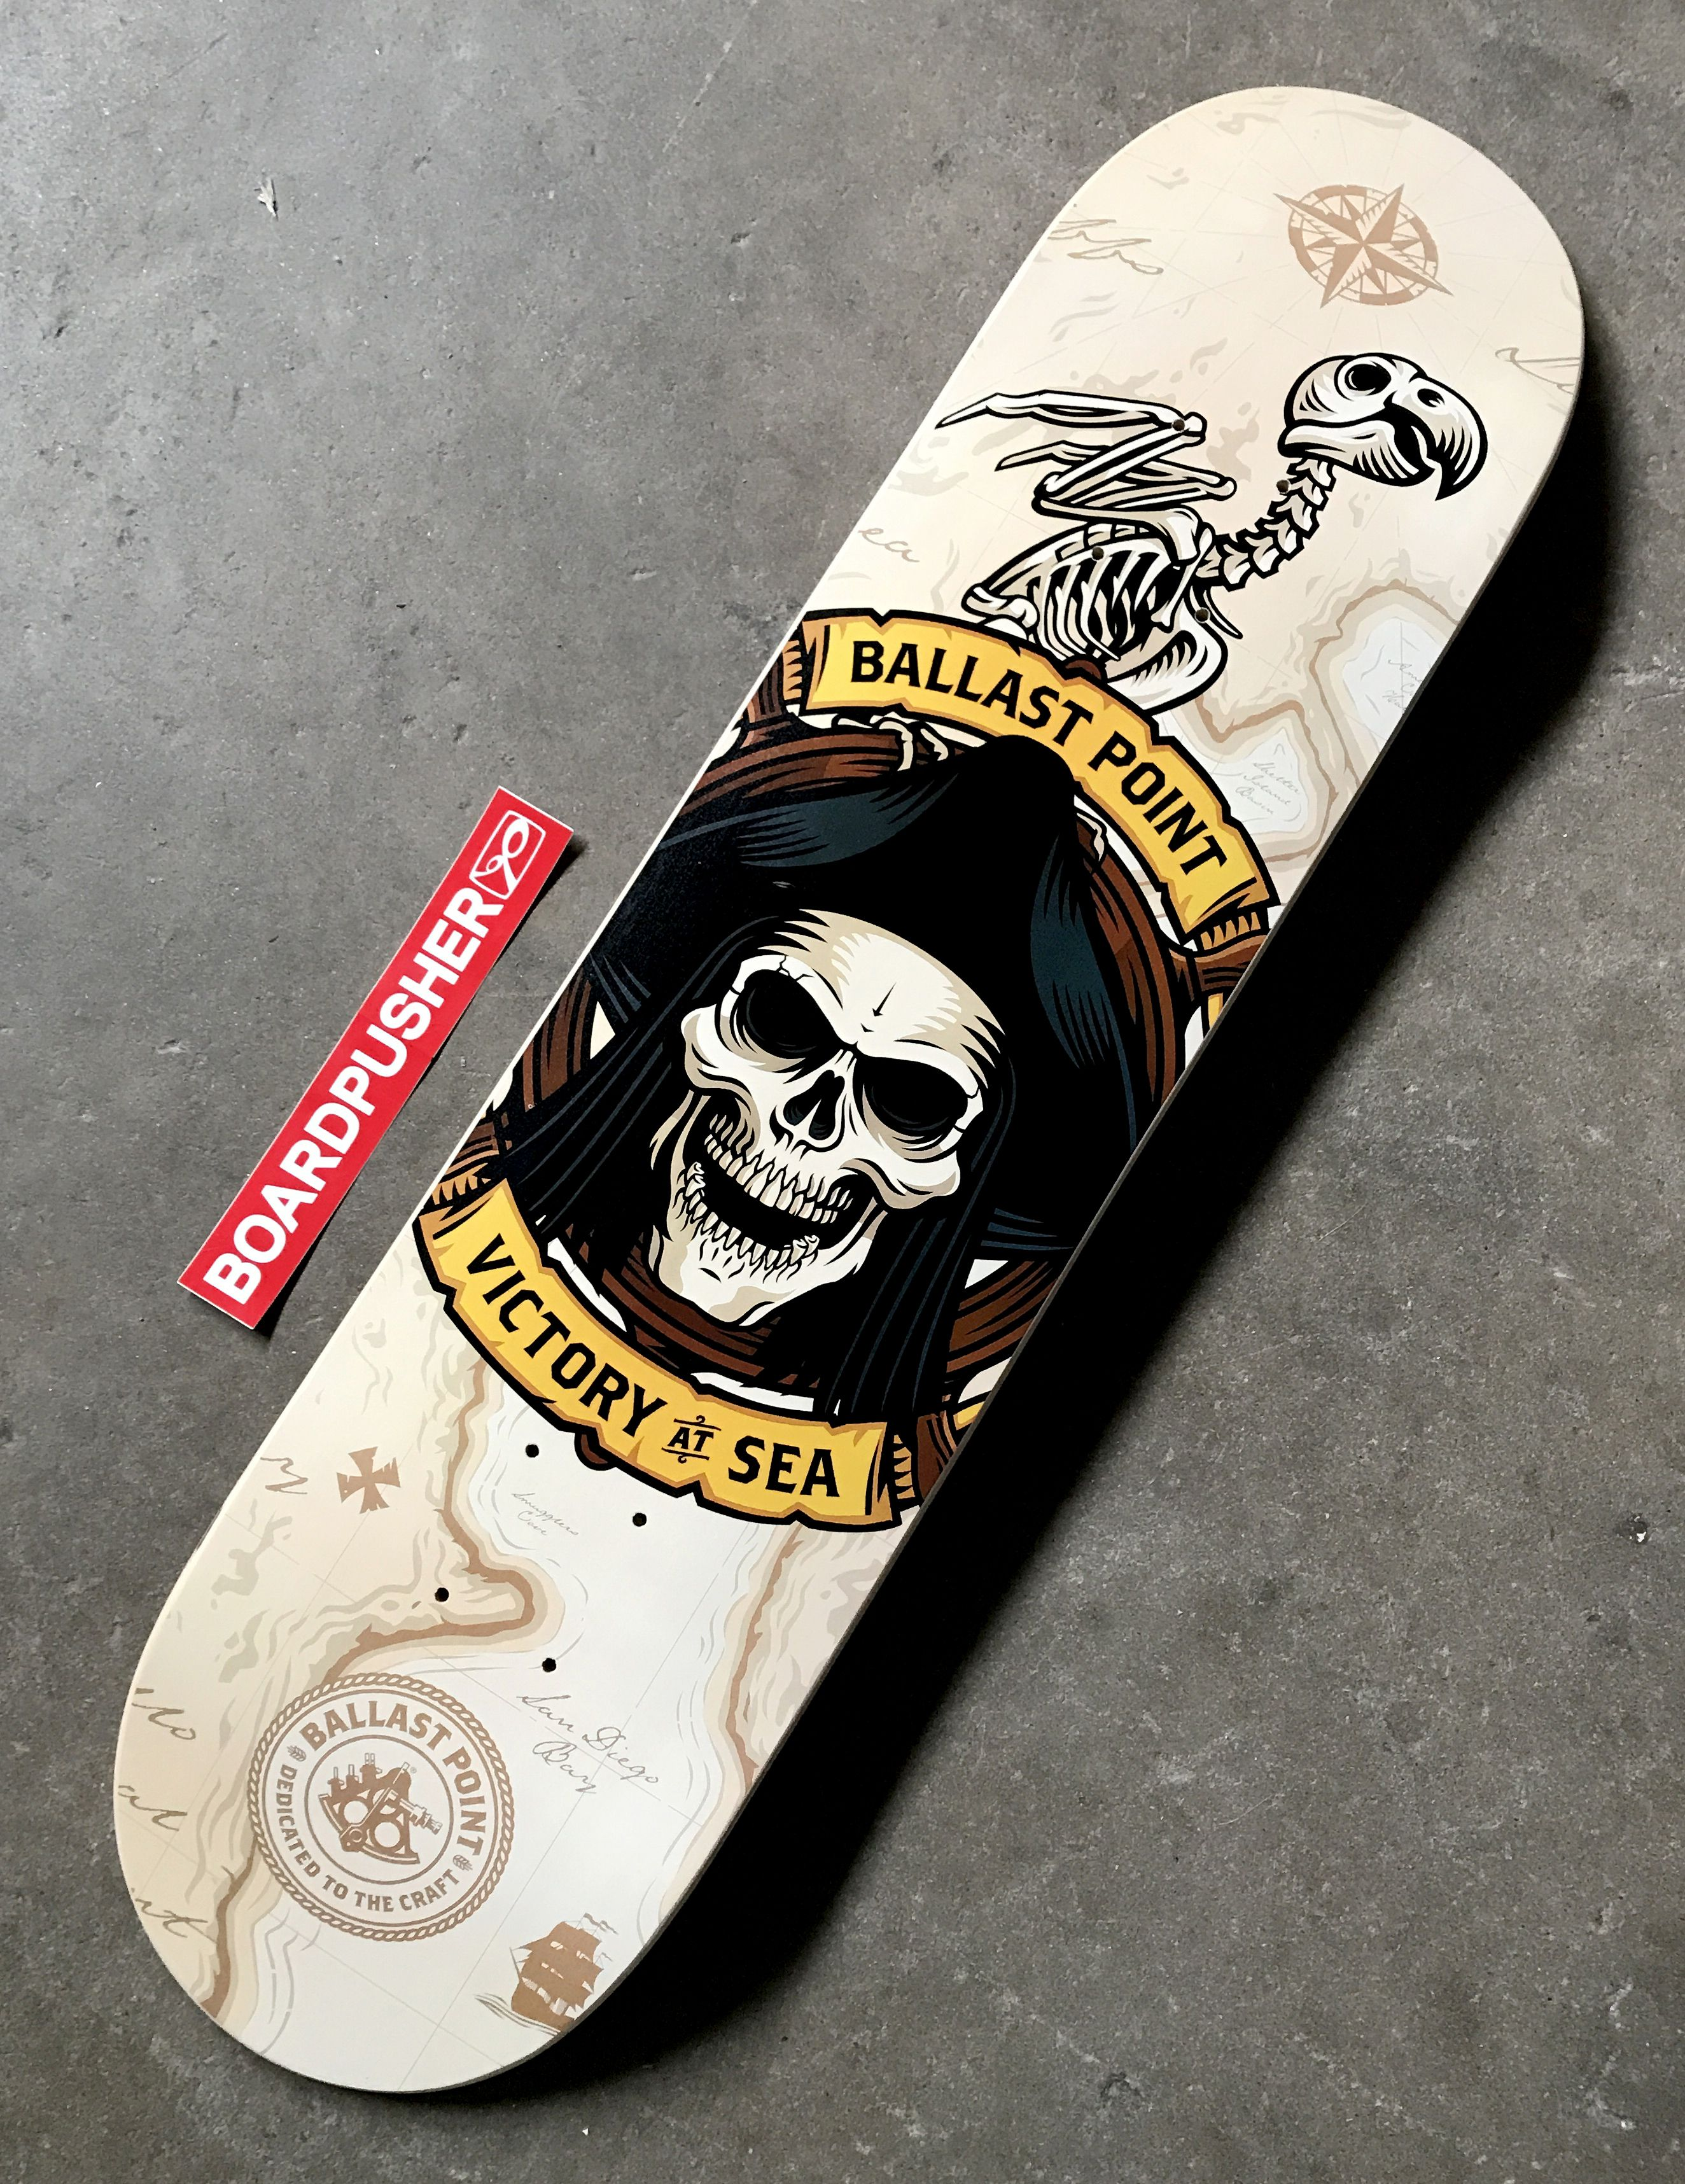 Boardpusher Com Custom Skateboards Featured Deck Of The Day Created By Train Design For Ballast Point Brewing Click Th Custom Skateboards Ballast Point Design